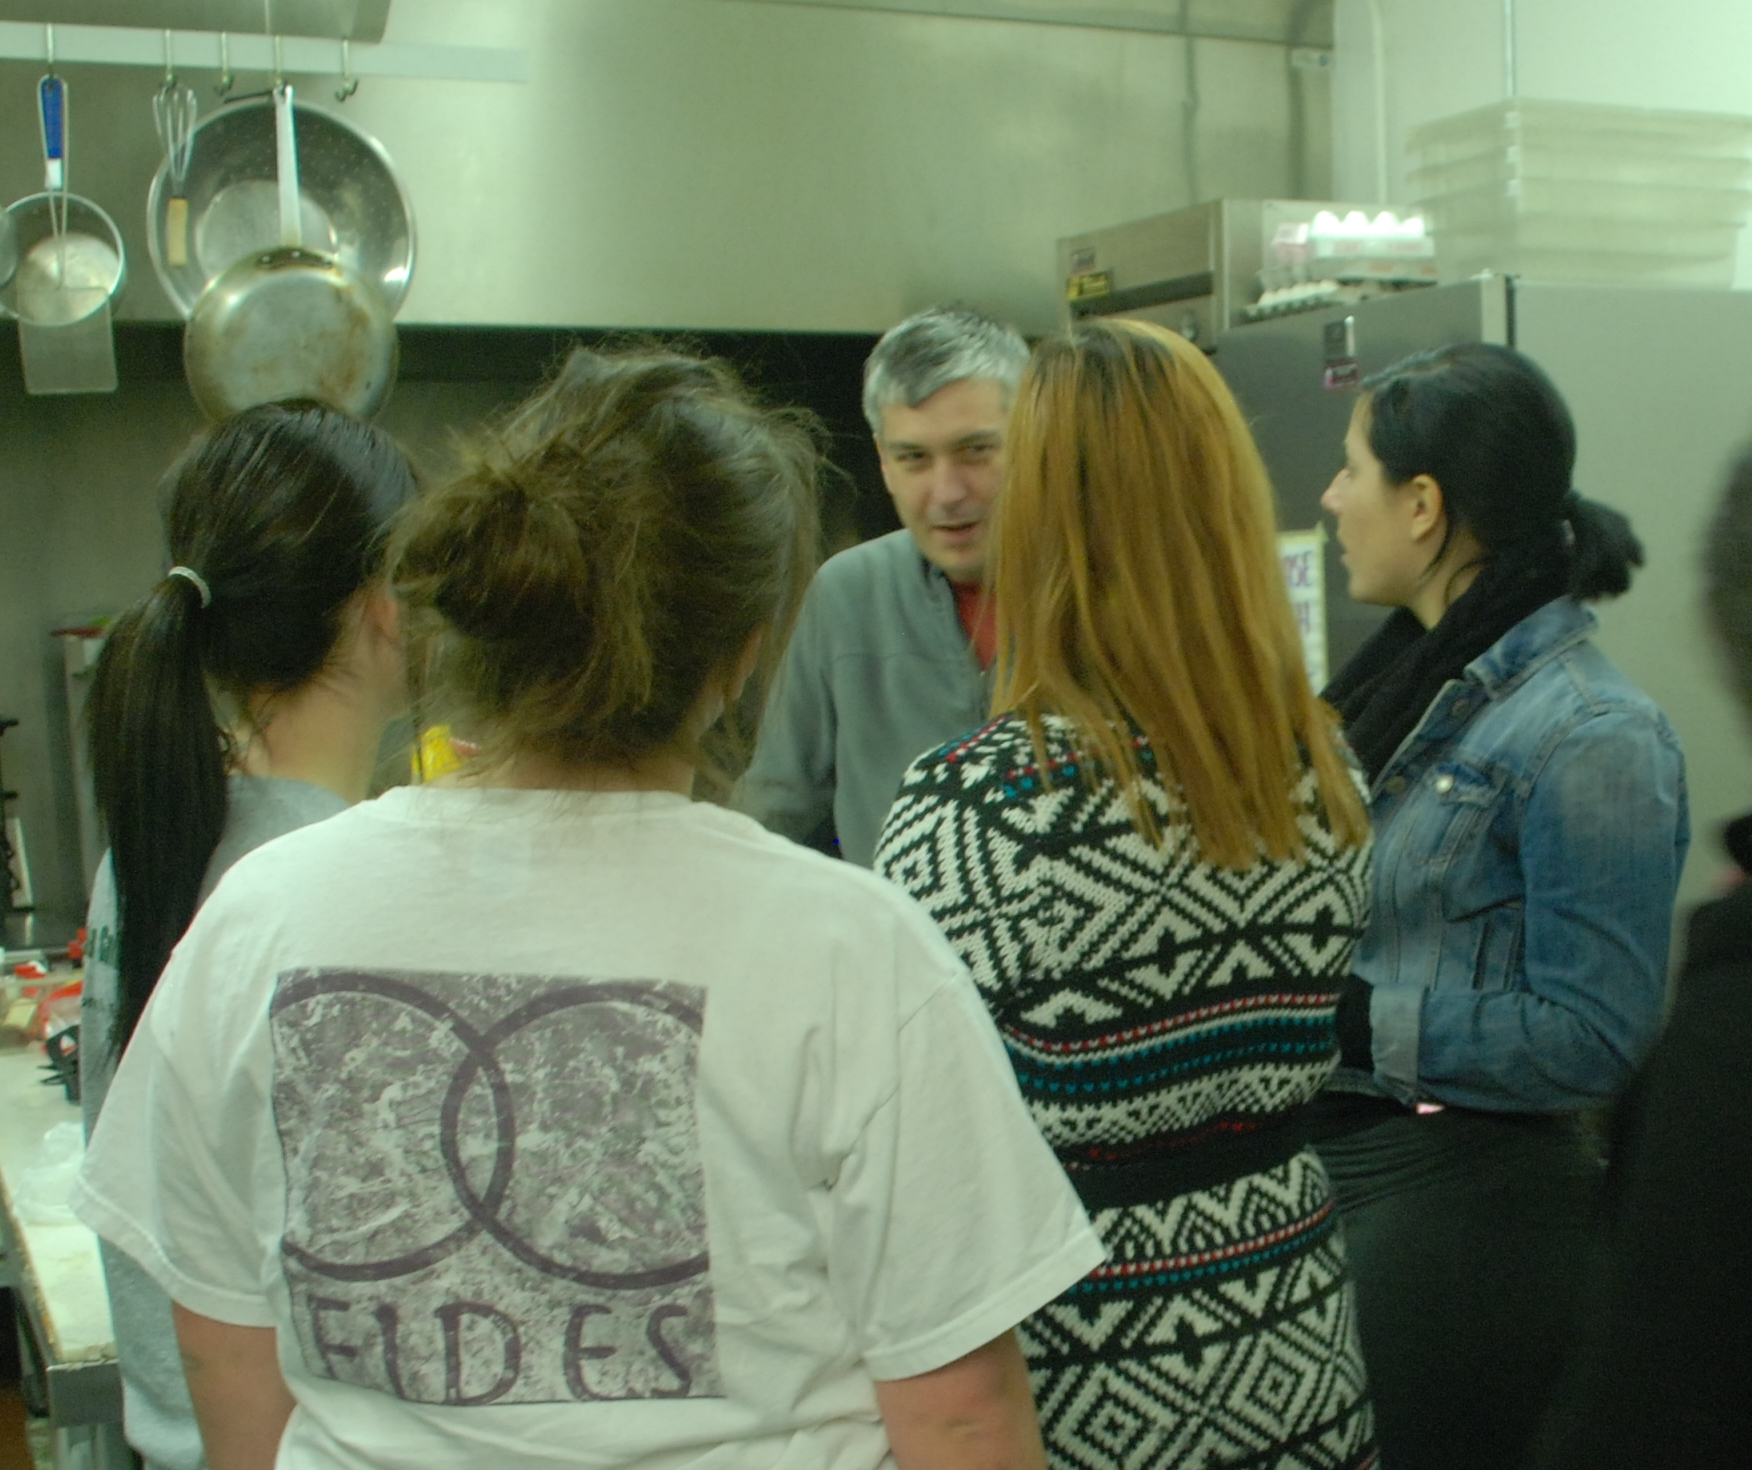 FIDES students serving at The Table soup kitchen